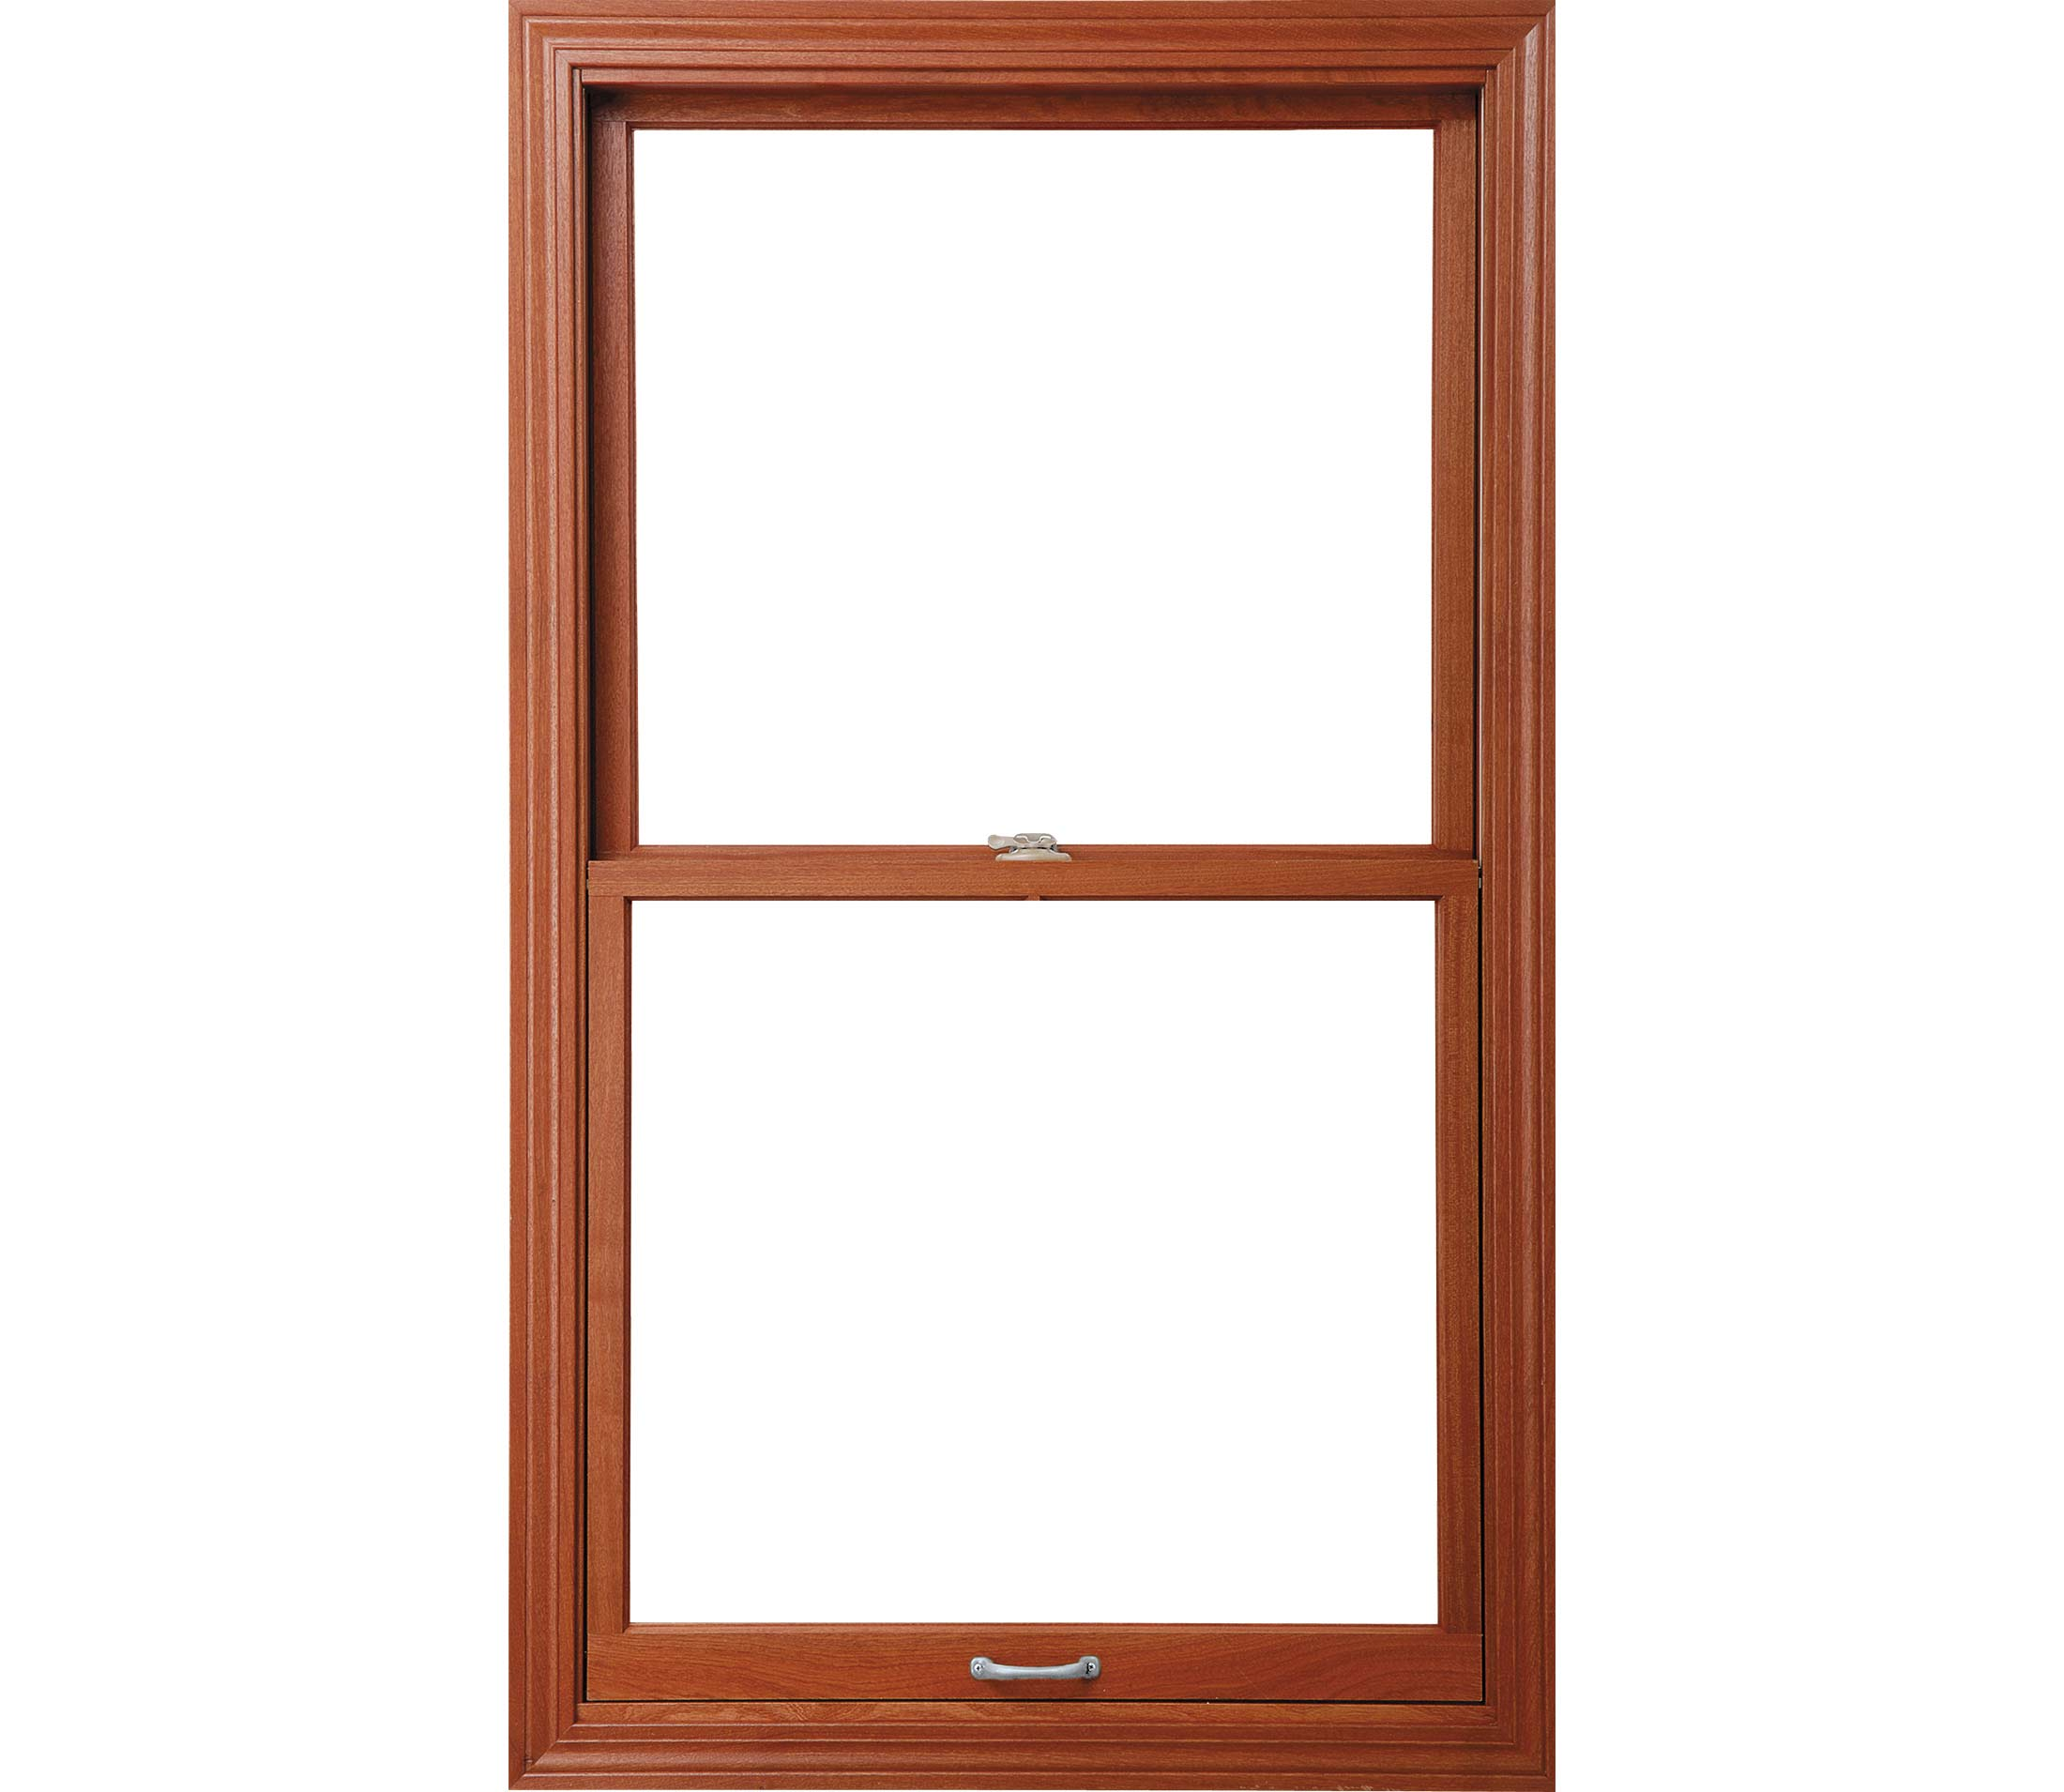 Loewen Double Hung Window Revuu